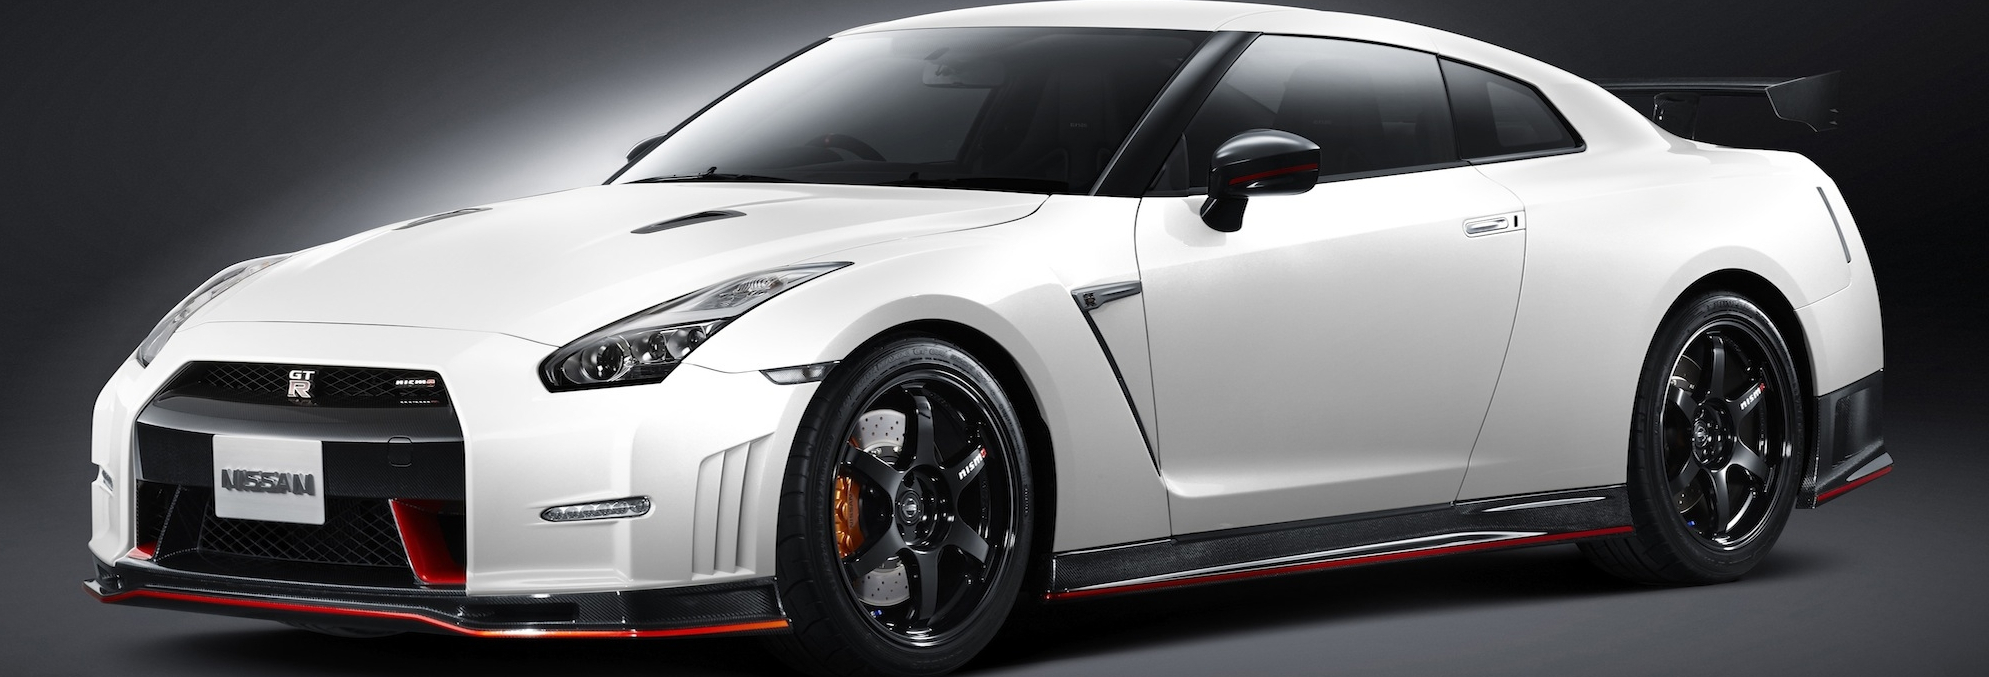 The Nissan GT-R remains one of the quickest supercars ever produced with a neck-snapping 0-60 mph time of just 2.6 seconds. To keep up with the GT-R Nissan has designed a drone that is capable of delivering a 0-60 mph in just 1.3 seconds with a top speed of 115 mph. This miniature quad-copter allows Nissan to take some breathtaking images of the GT-R at much closer distances than what was previously possible.